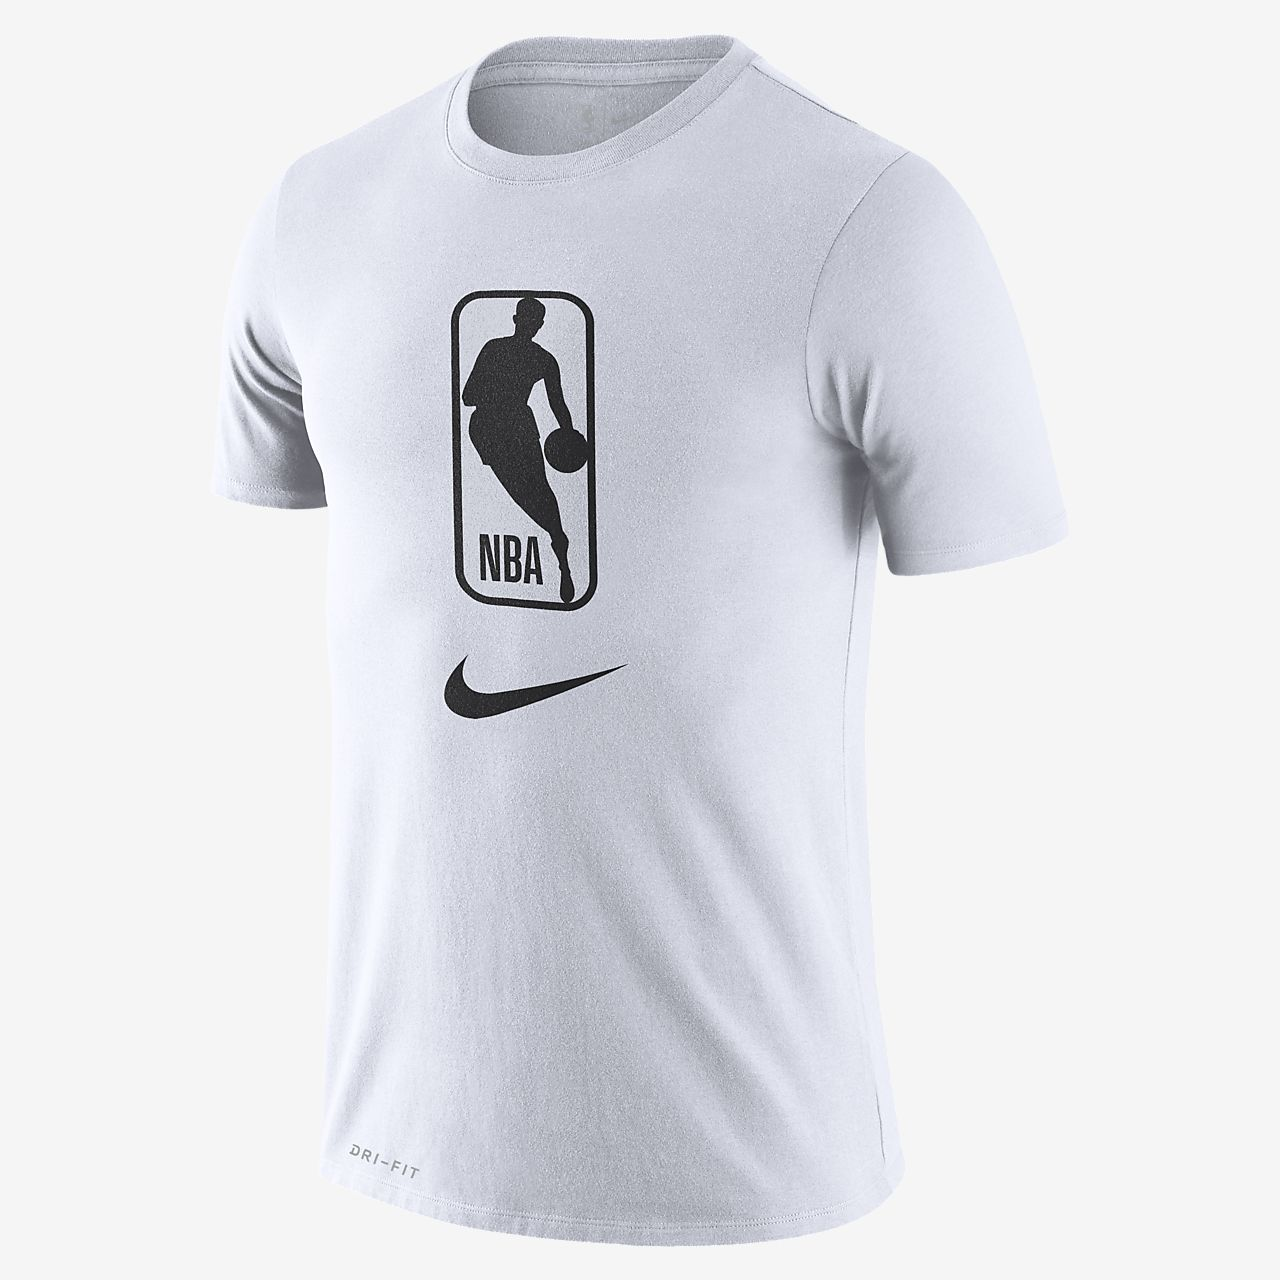 Team 31 Men's Nike Dri-FIT NBA T-Shirt